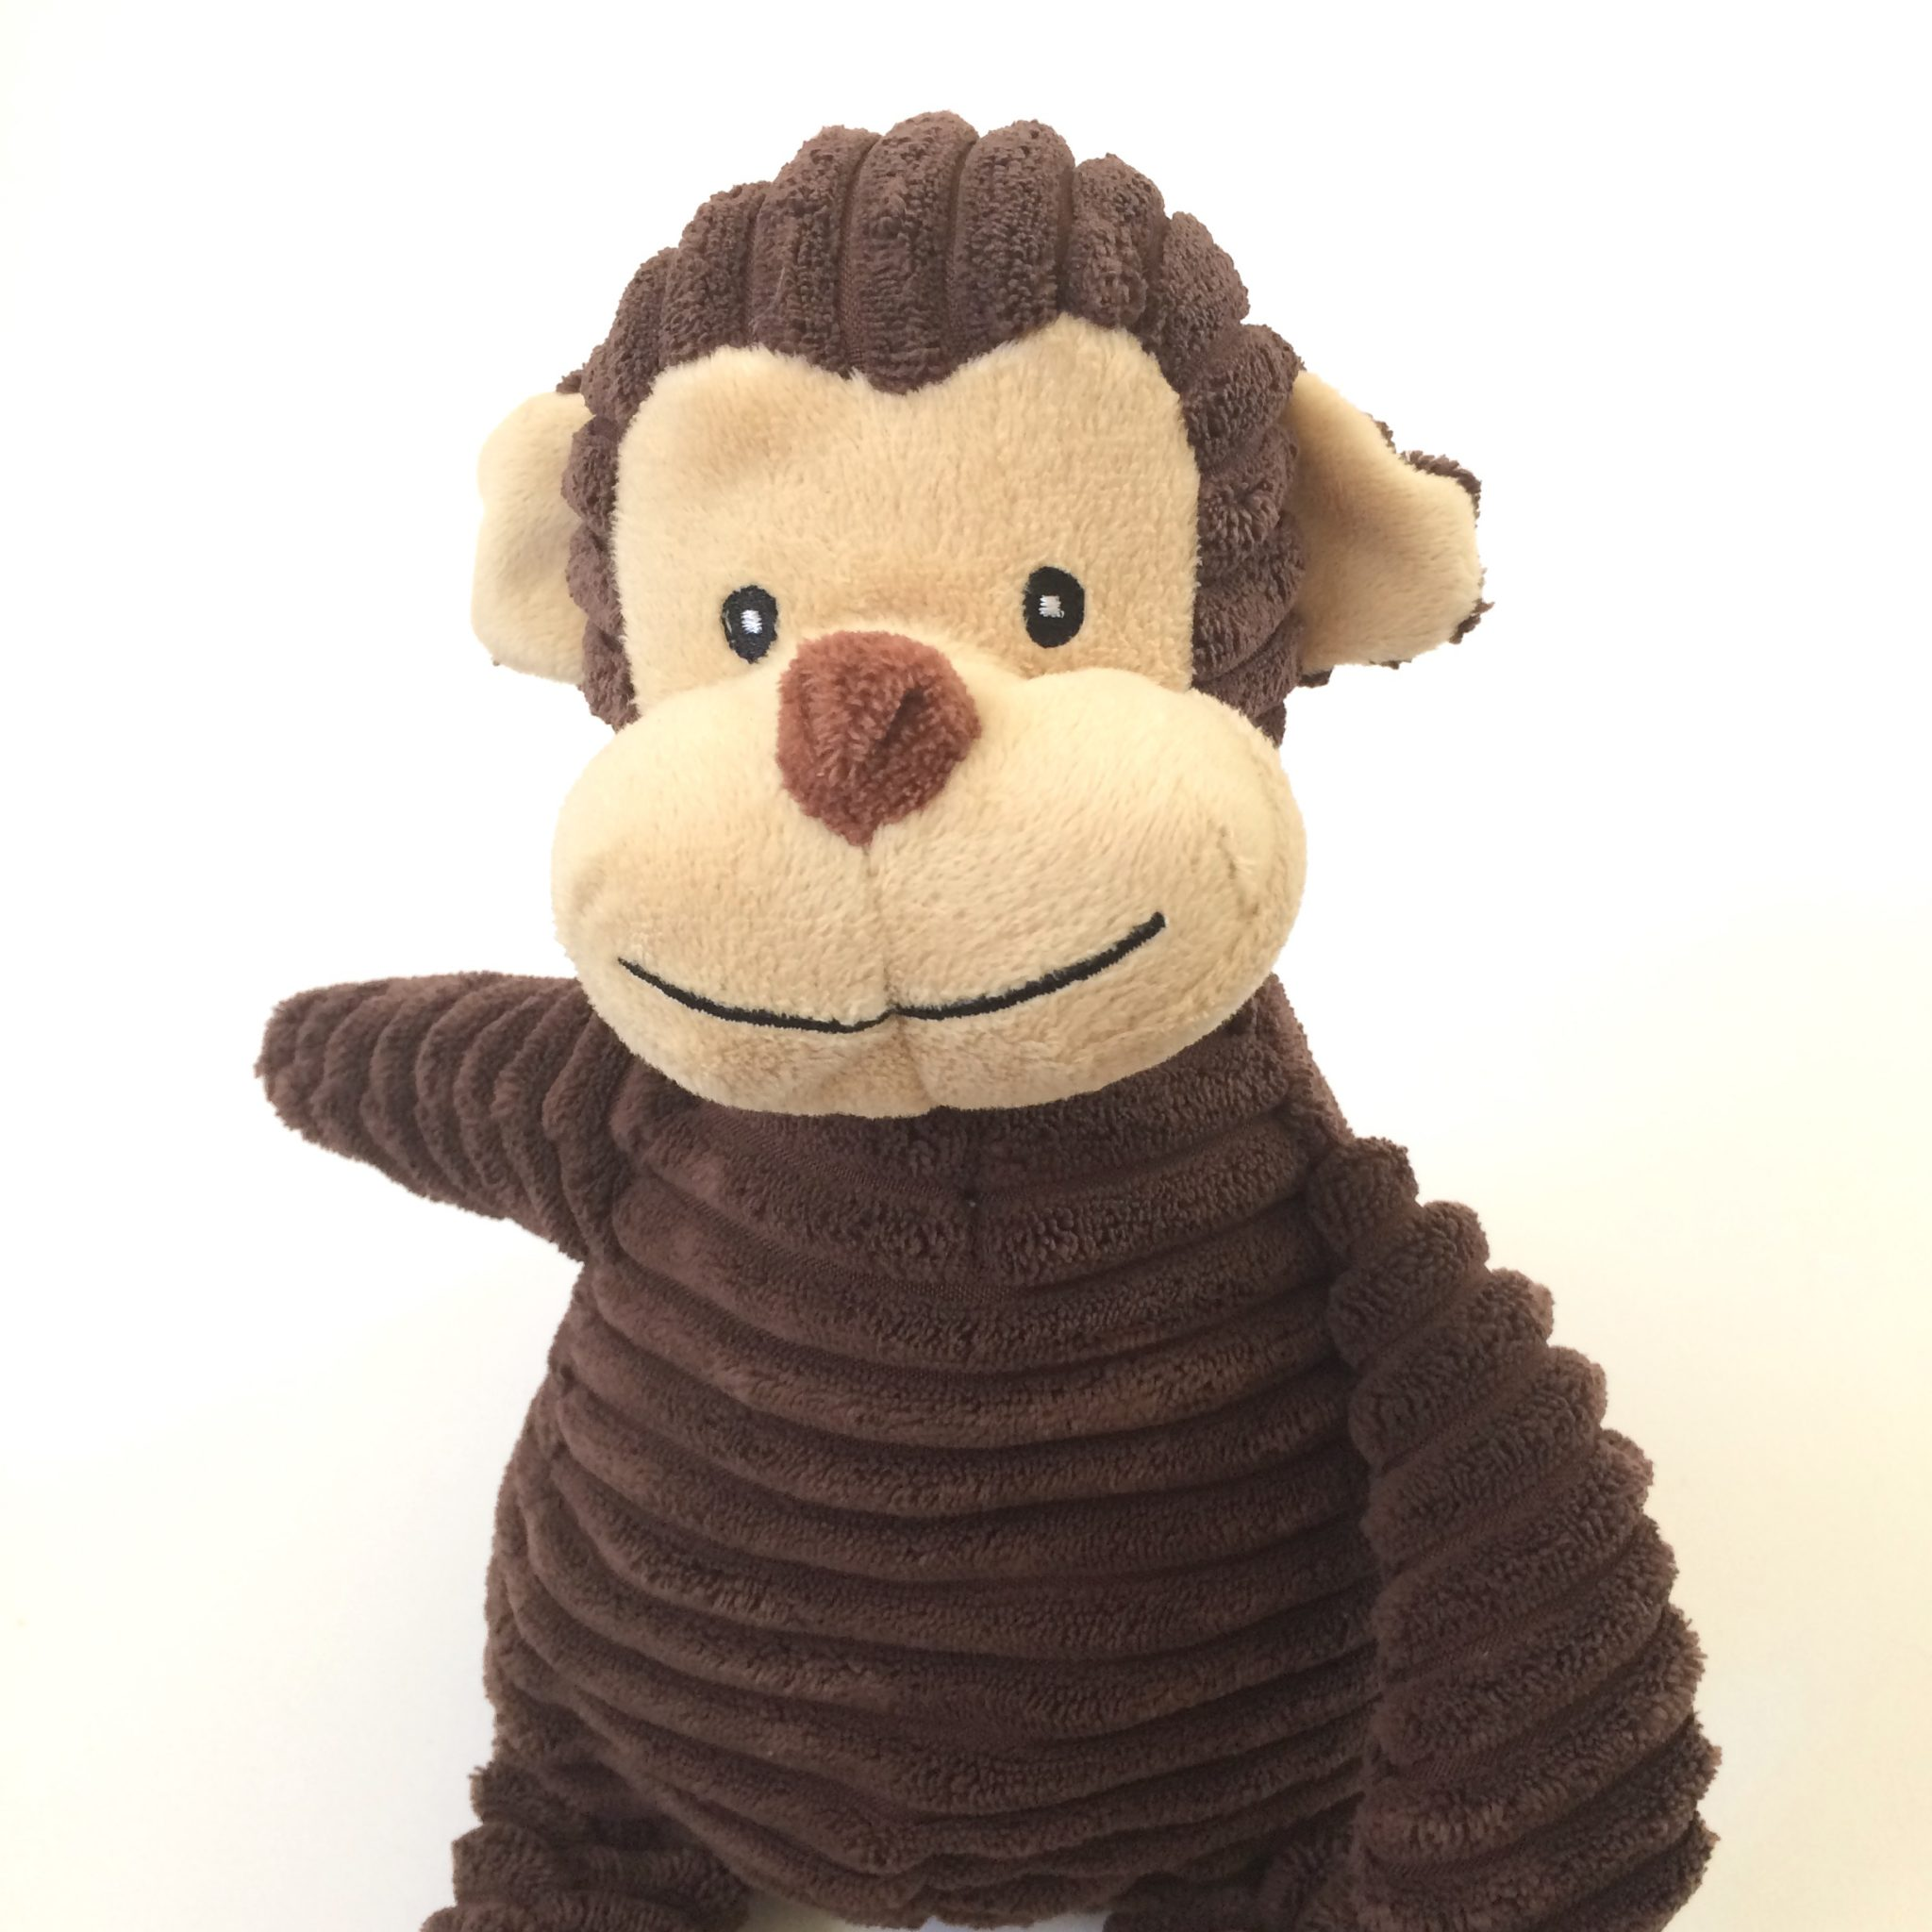 Teddy Bear Stuffed Toy, Kordy Monkey 12 By Unipak Toycycle Baby Consignment Store Buy Sell Toys And Baby Gear